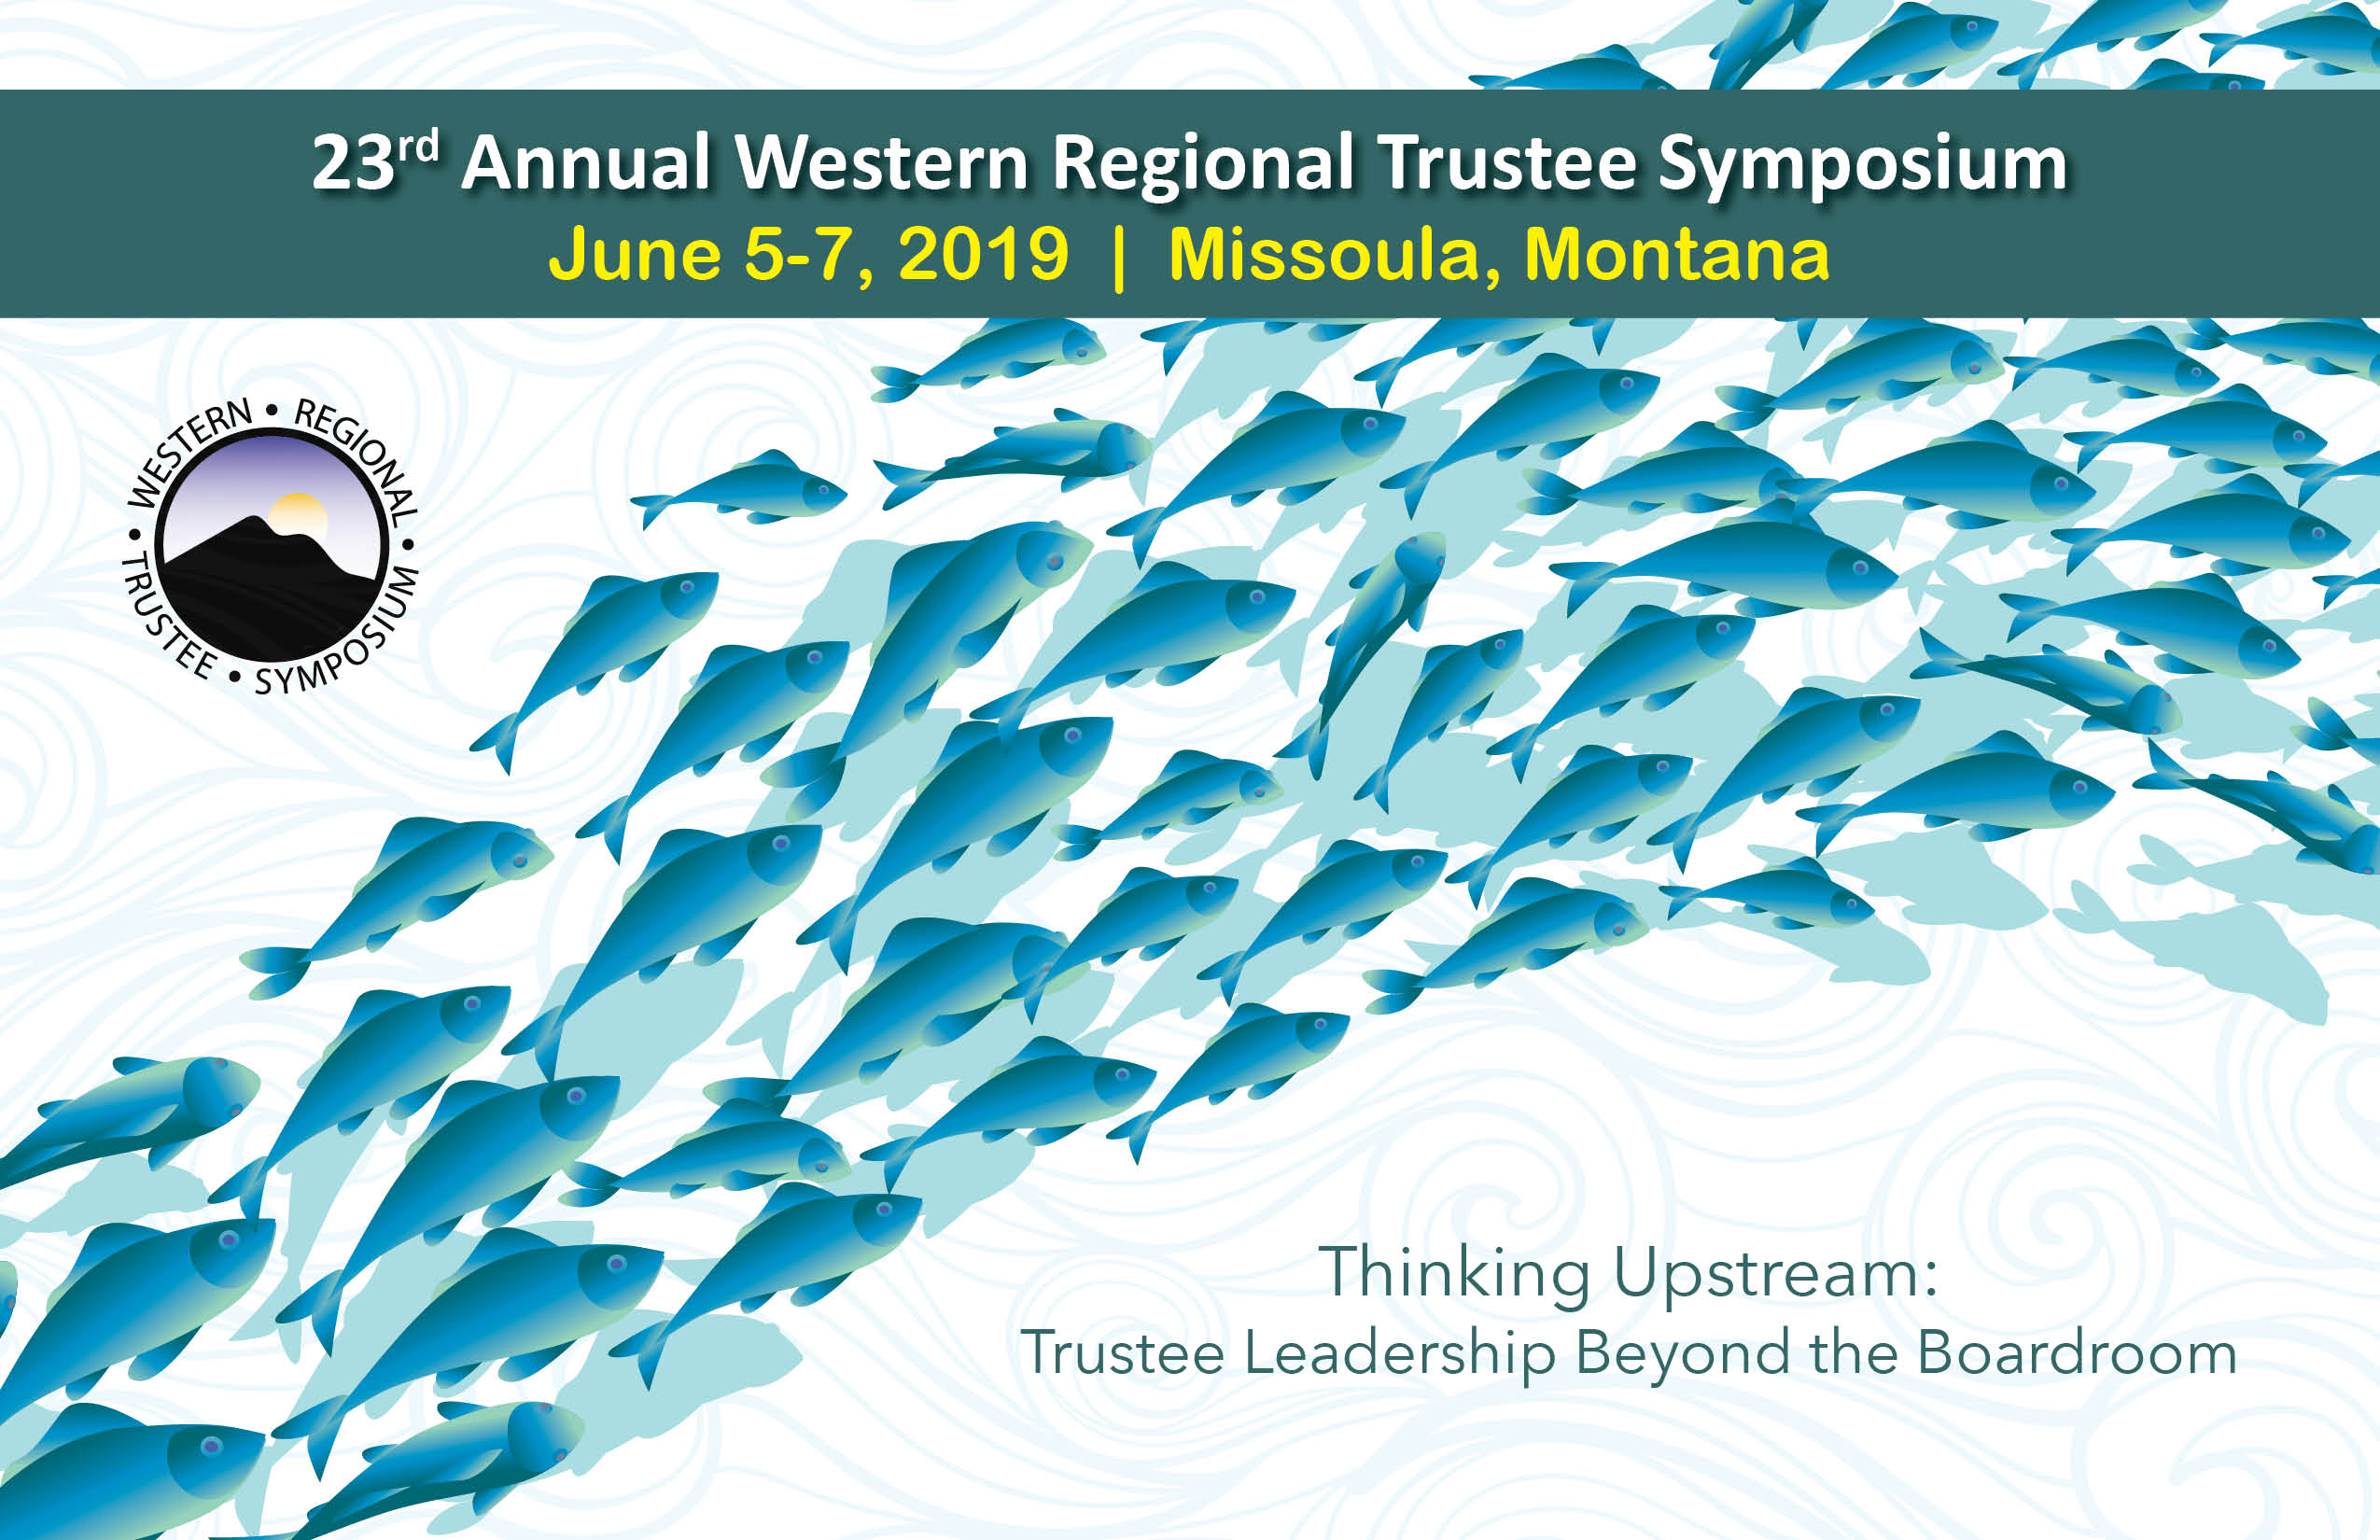 Register now for WRTS 2019